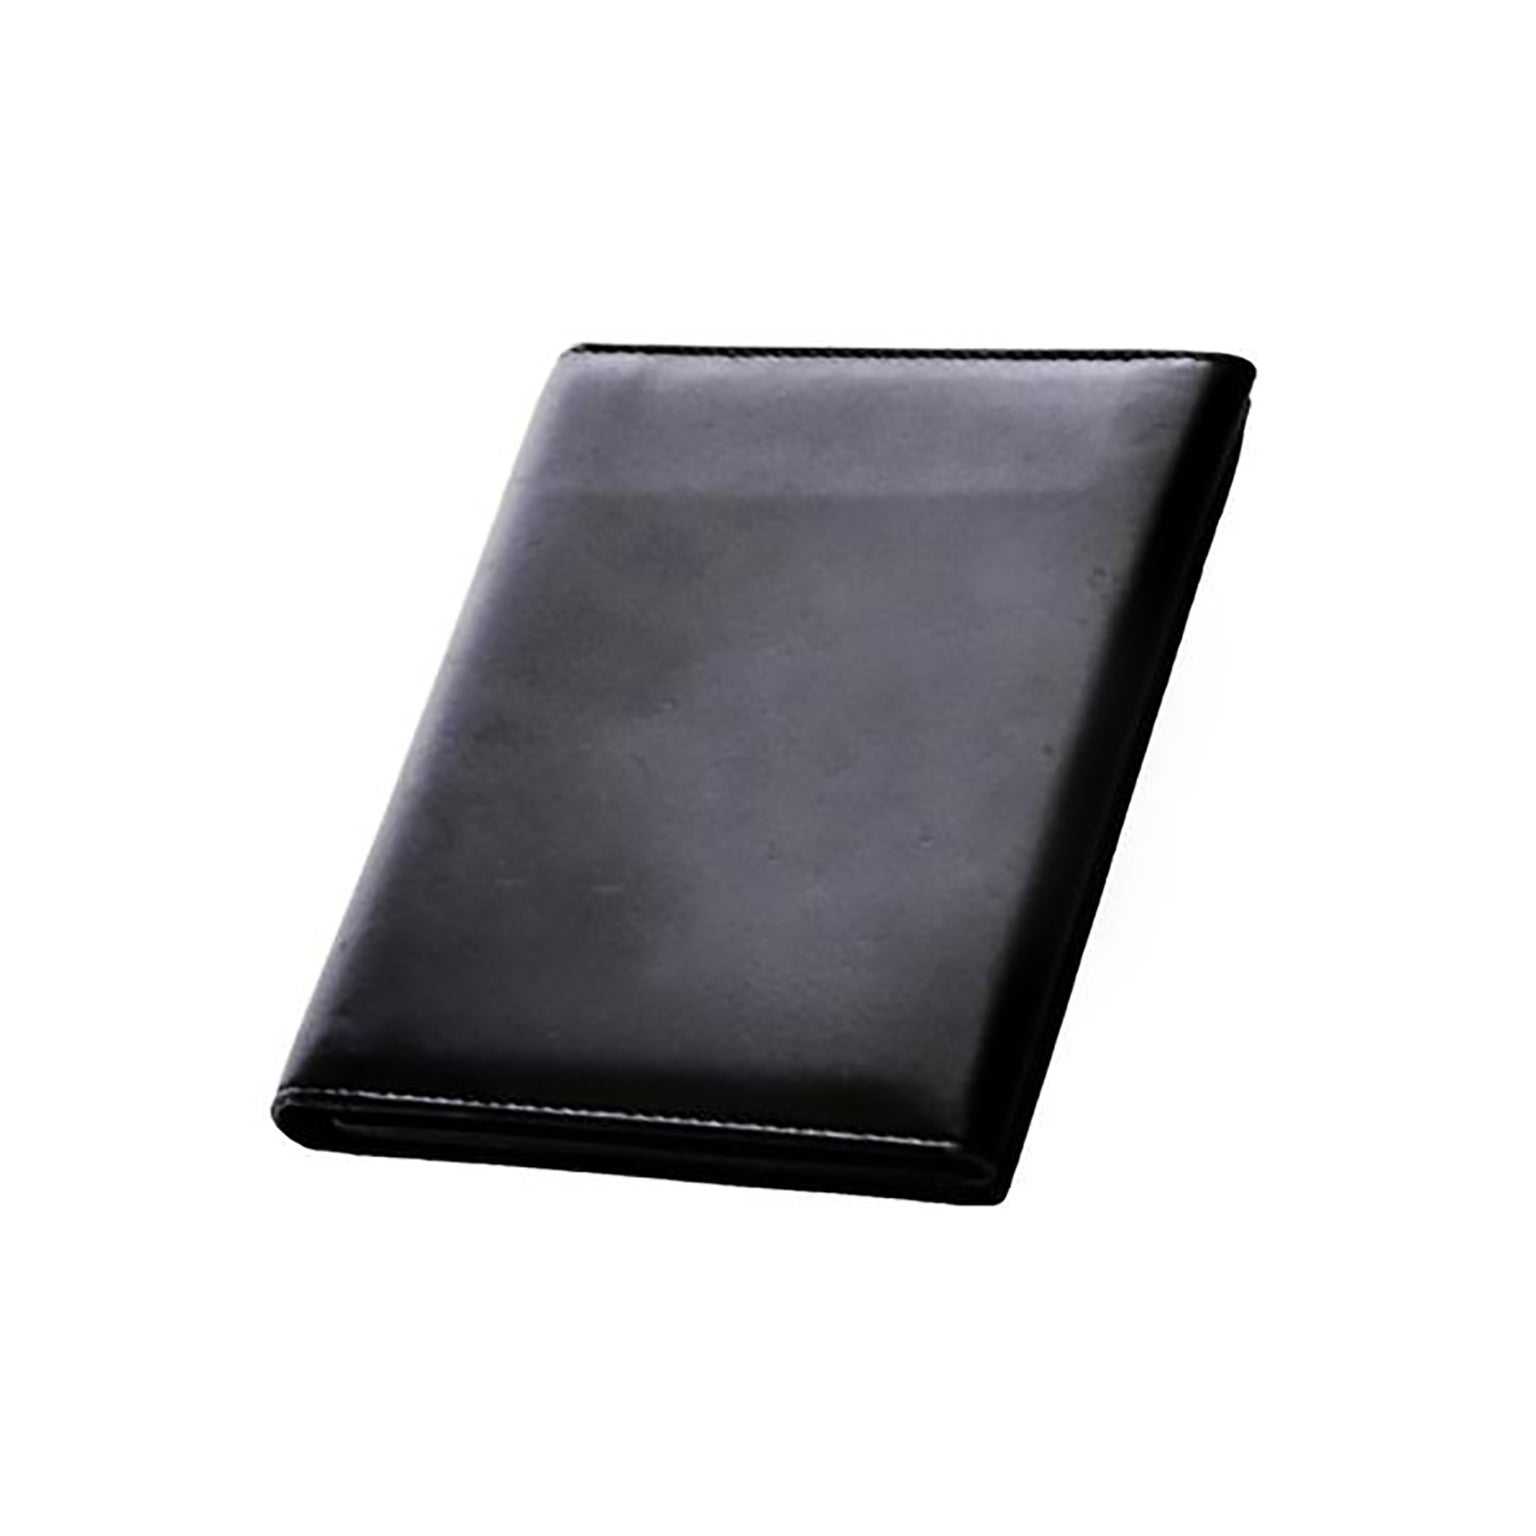 5dd2e889c36 Vintage Gucci 1970s Photograph Photo Wallet in Black Leather Made in Italy  For Sale at 1stdibs